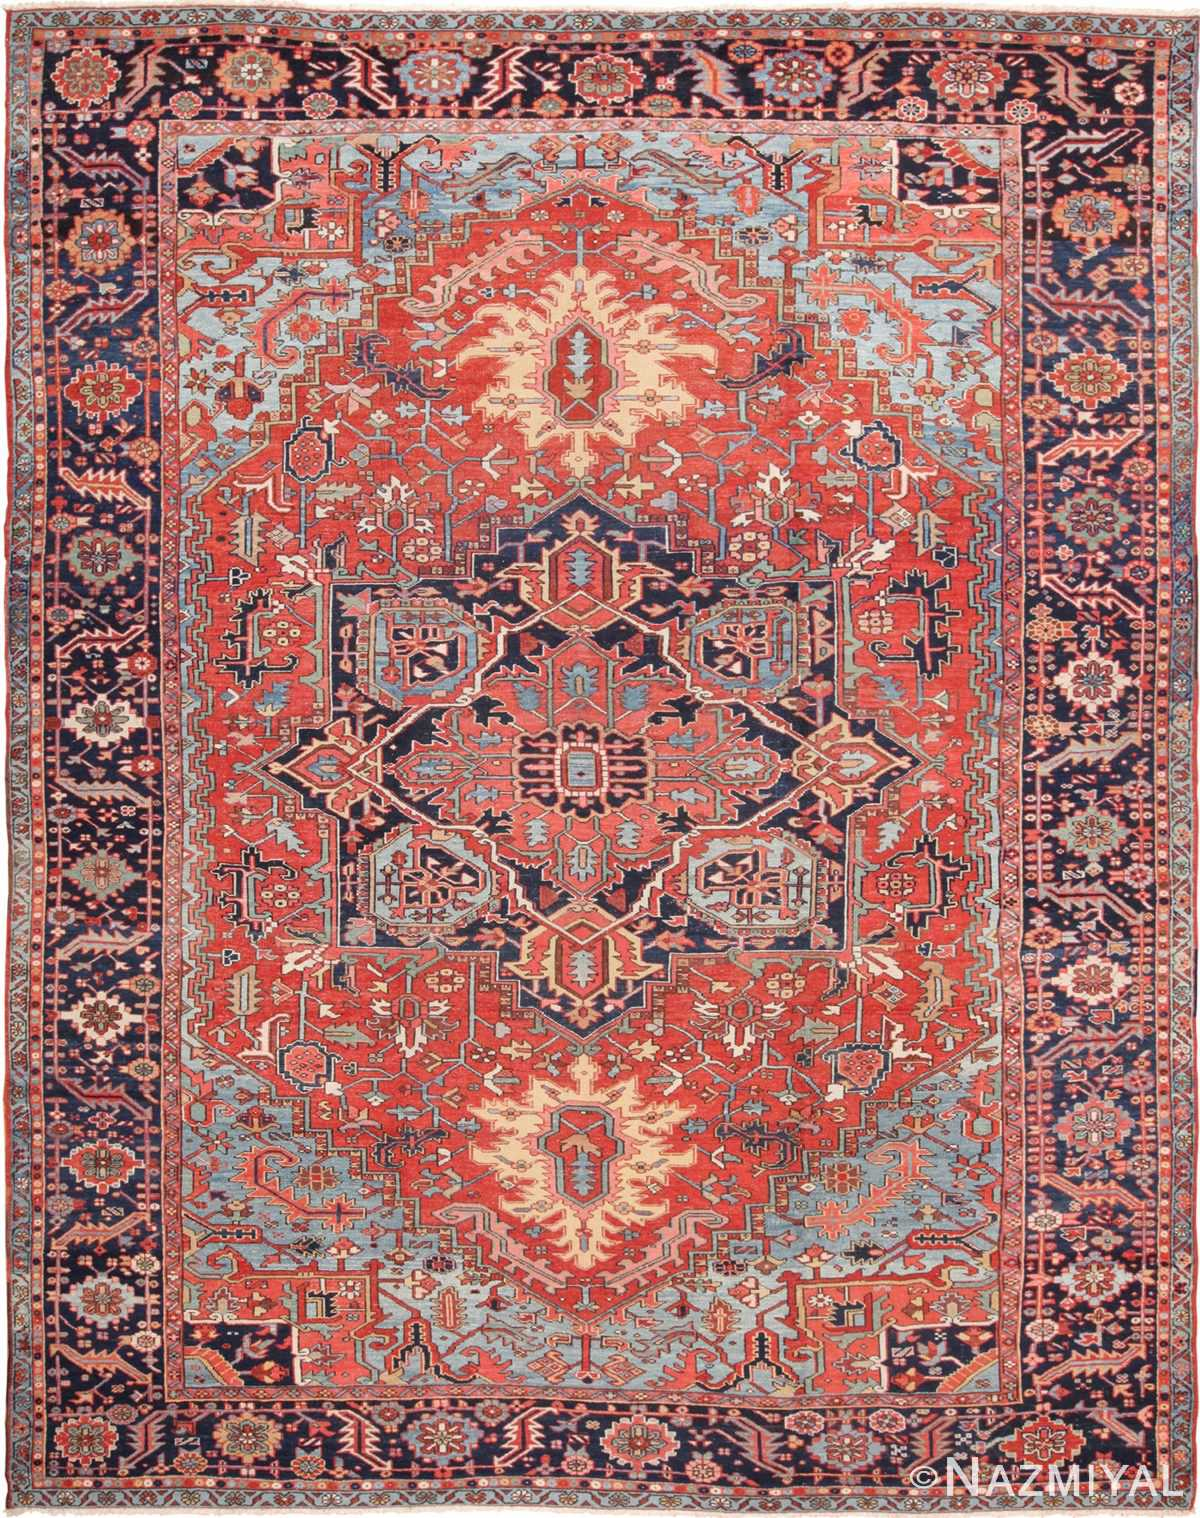 Large Antique Geometric Persian Heriz Rug 49654 by Nazmiyal